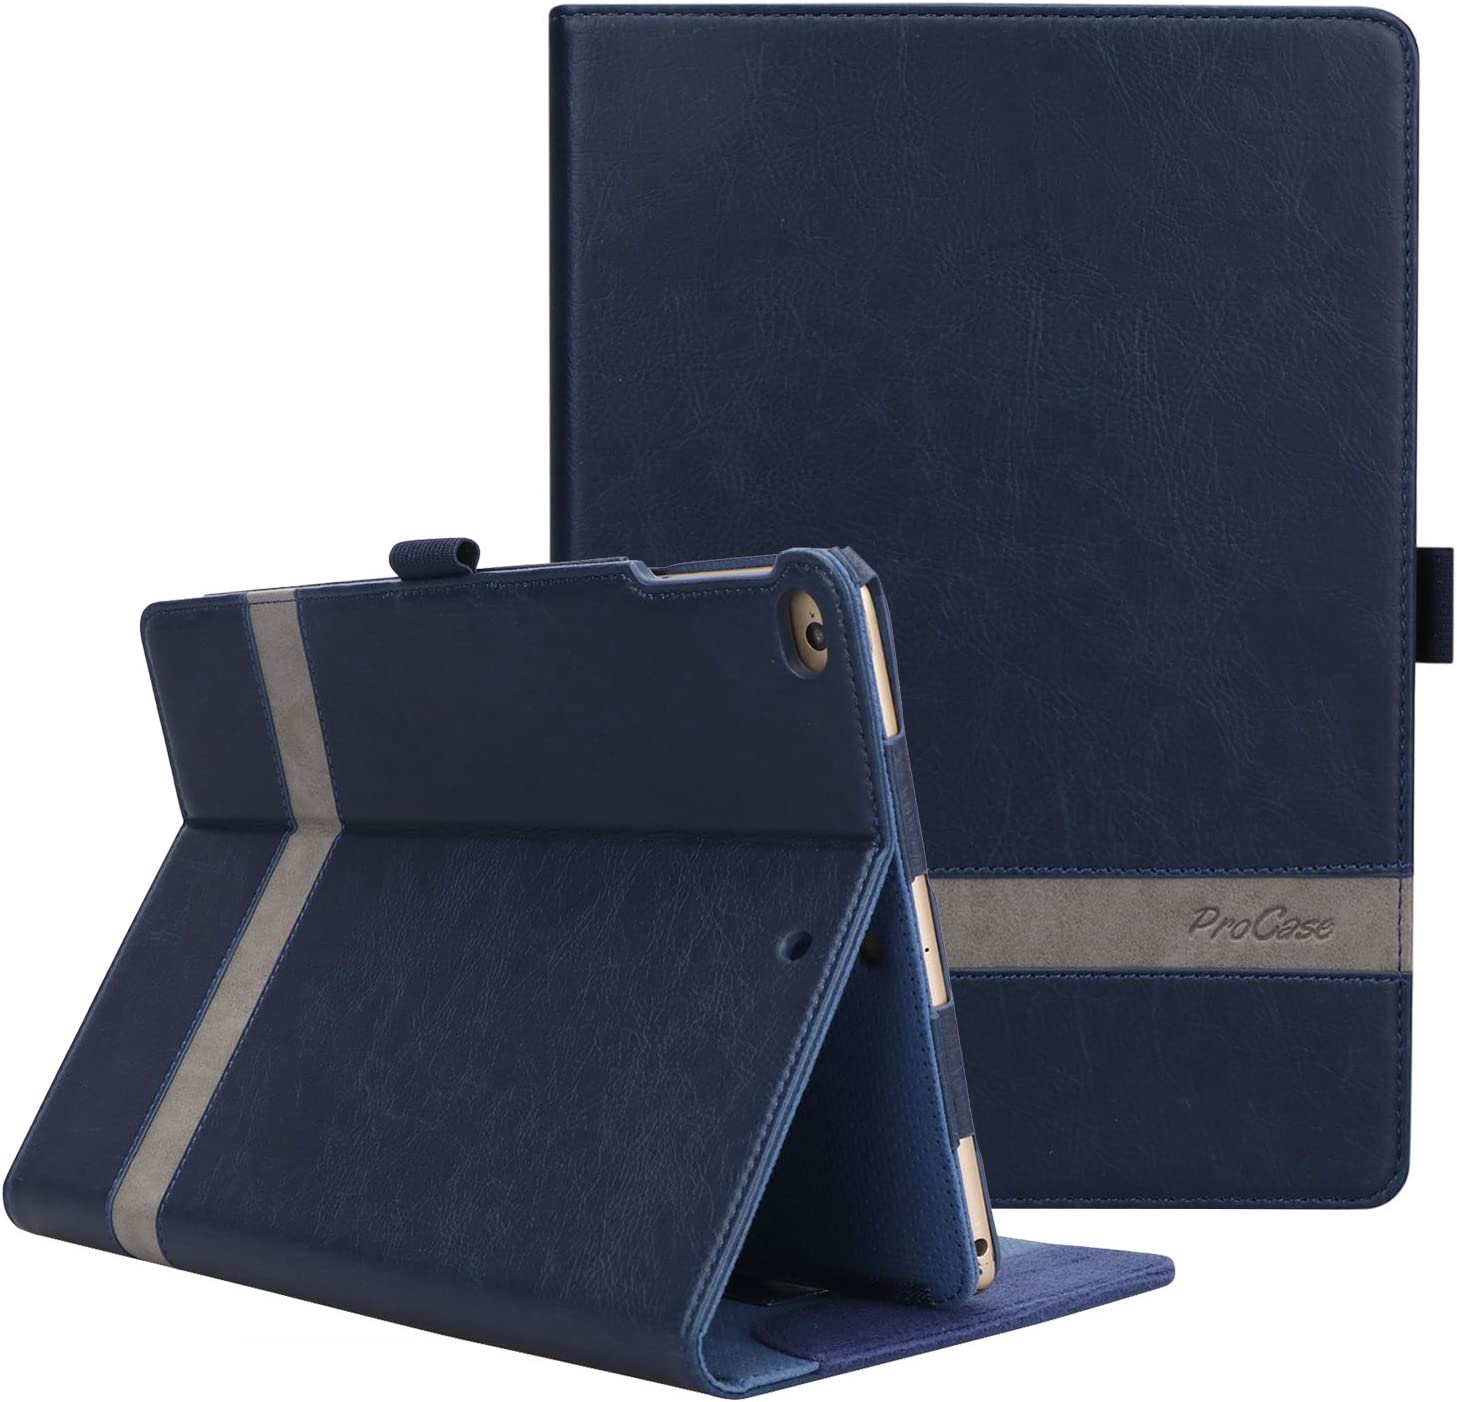 ProCase iPad 9.7 (Old Model) 6th 2018 / 5th 2017, iPad Air 2, iPad Air Case - Leather Stand Folio Cover Case with Multi-Angle Viewing for iPad 9.7 inch, Also Fit iPad Air 2 / iPad Air -Navy